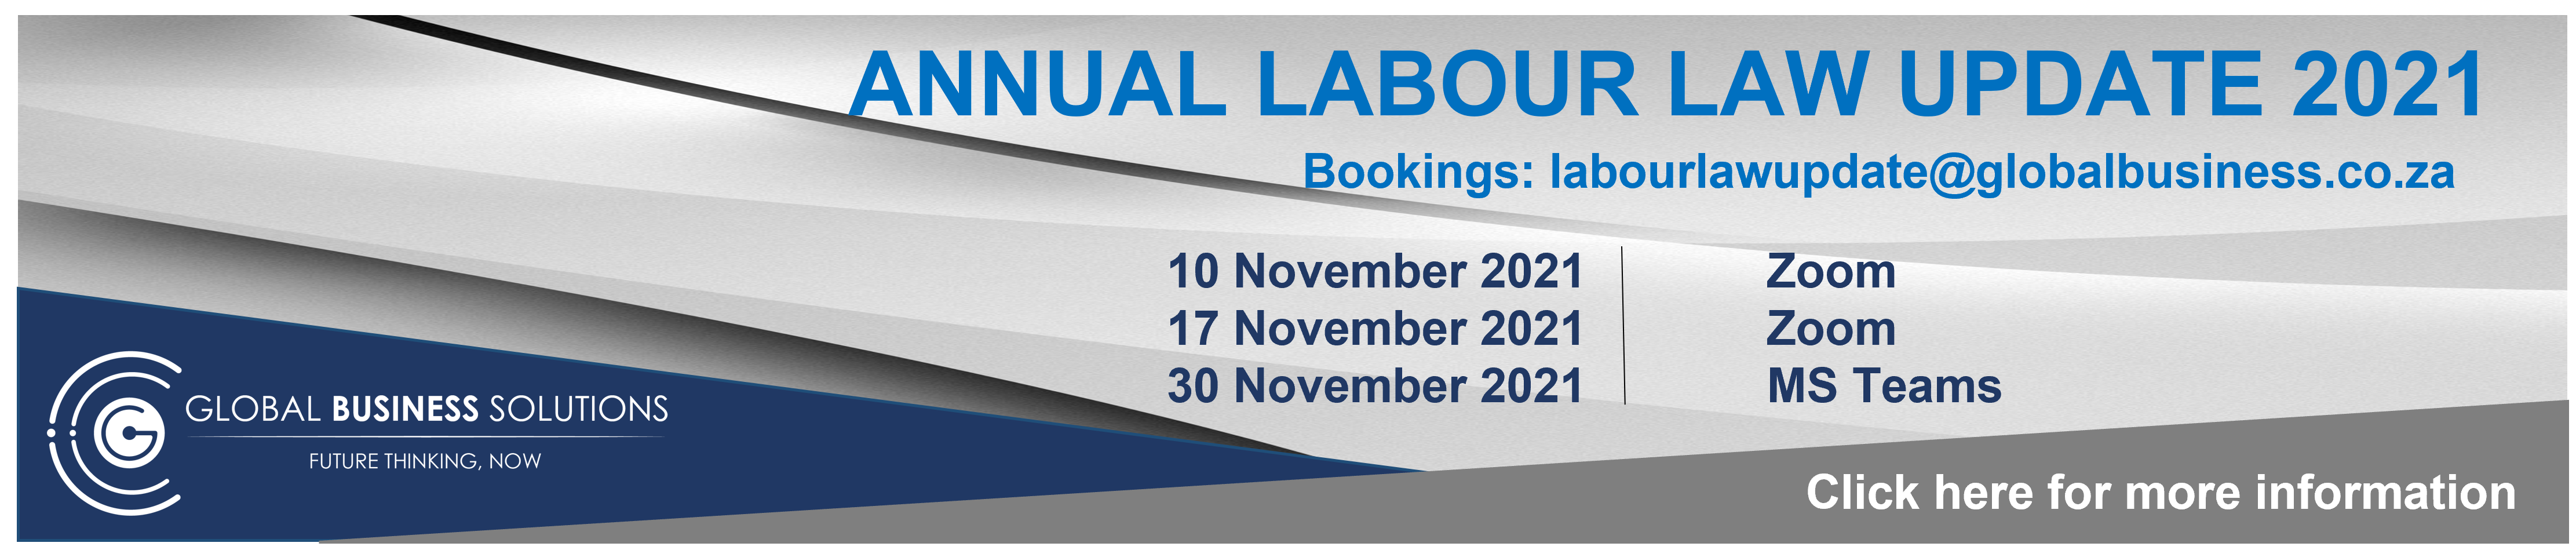 GBS Labour Law Update 2021